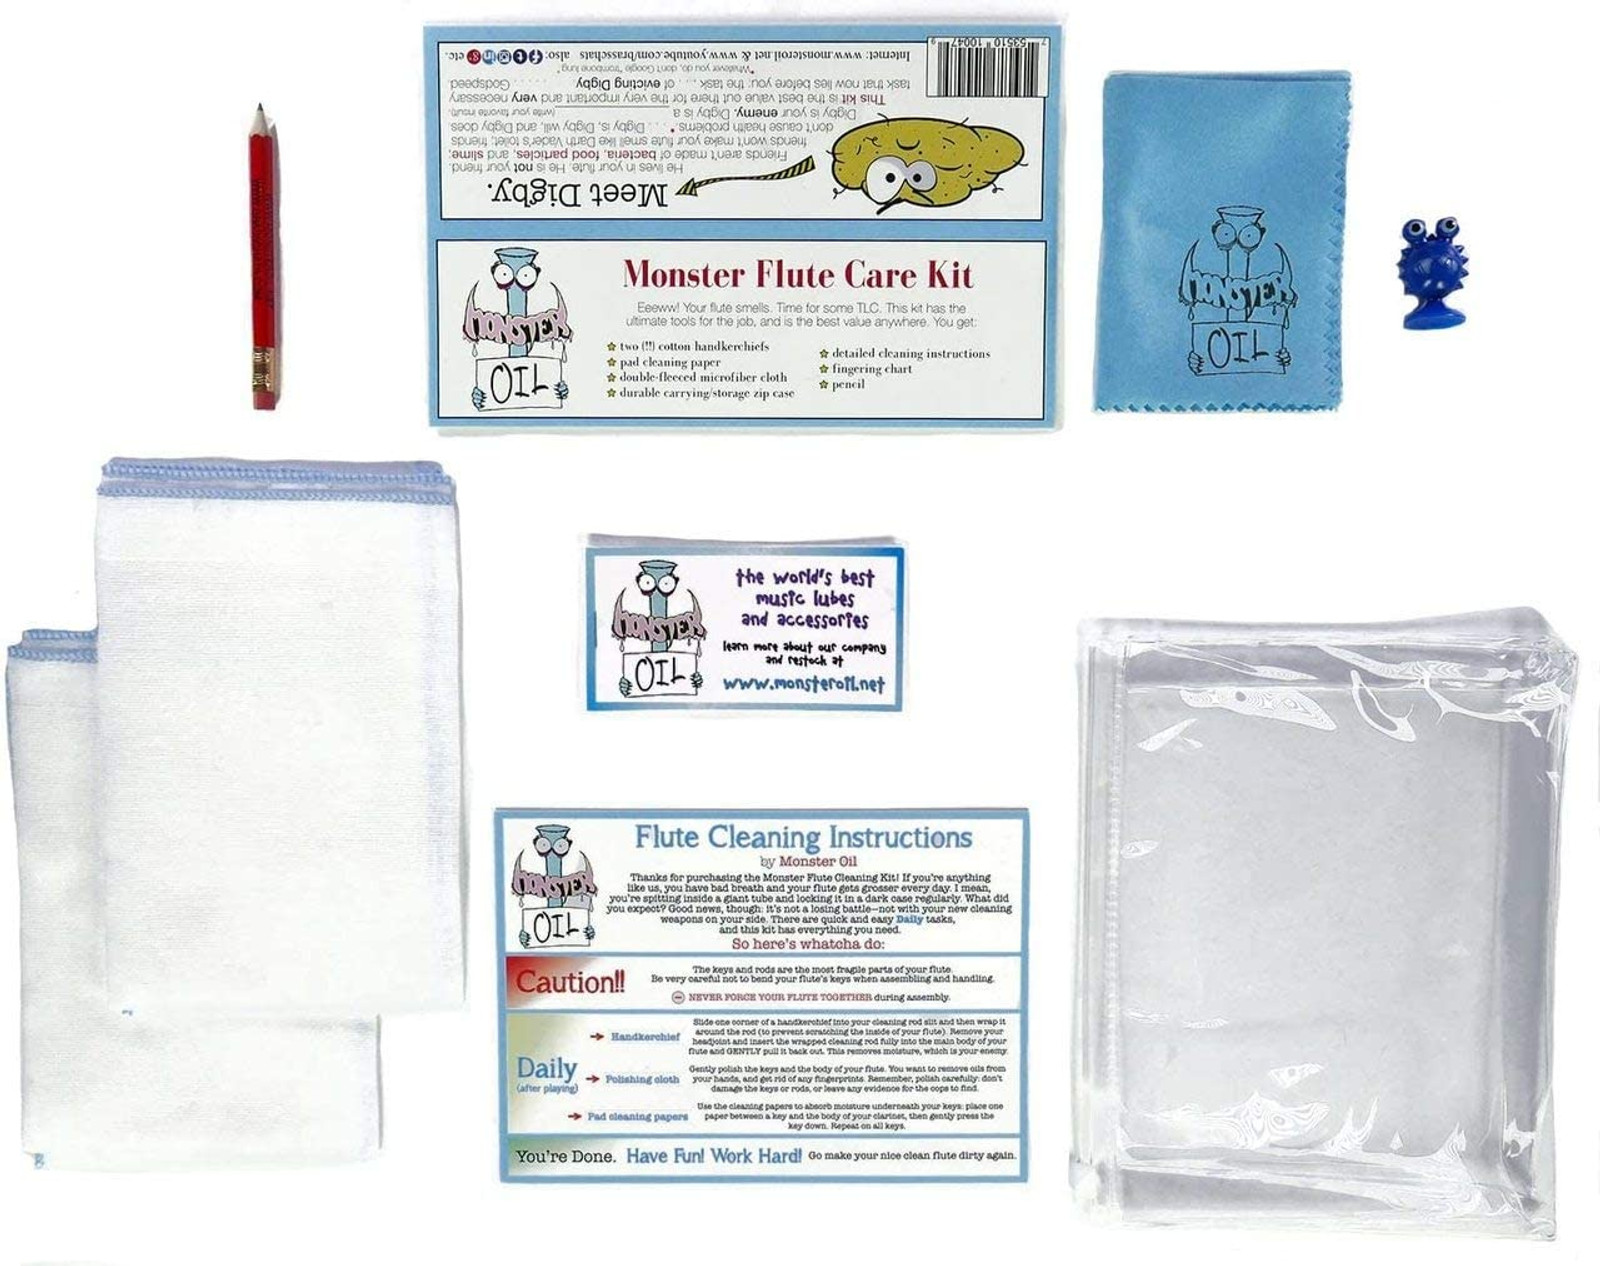 Flute Care and Cleaning Kit